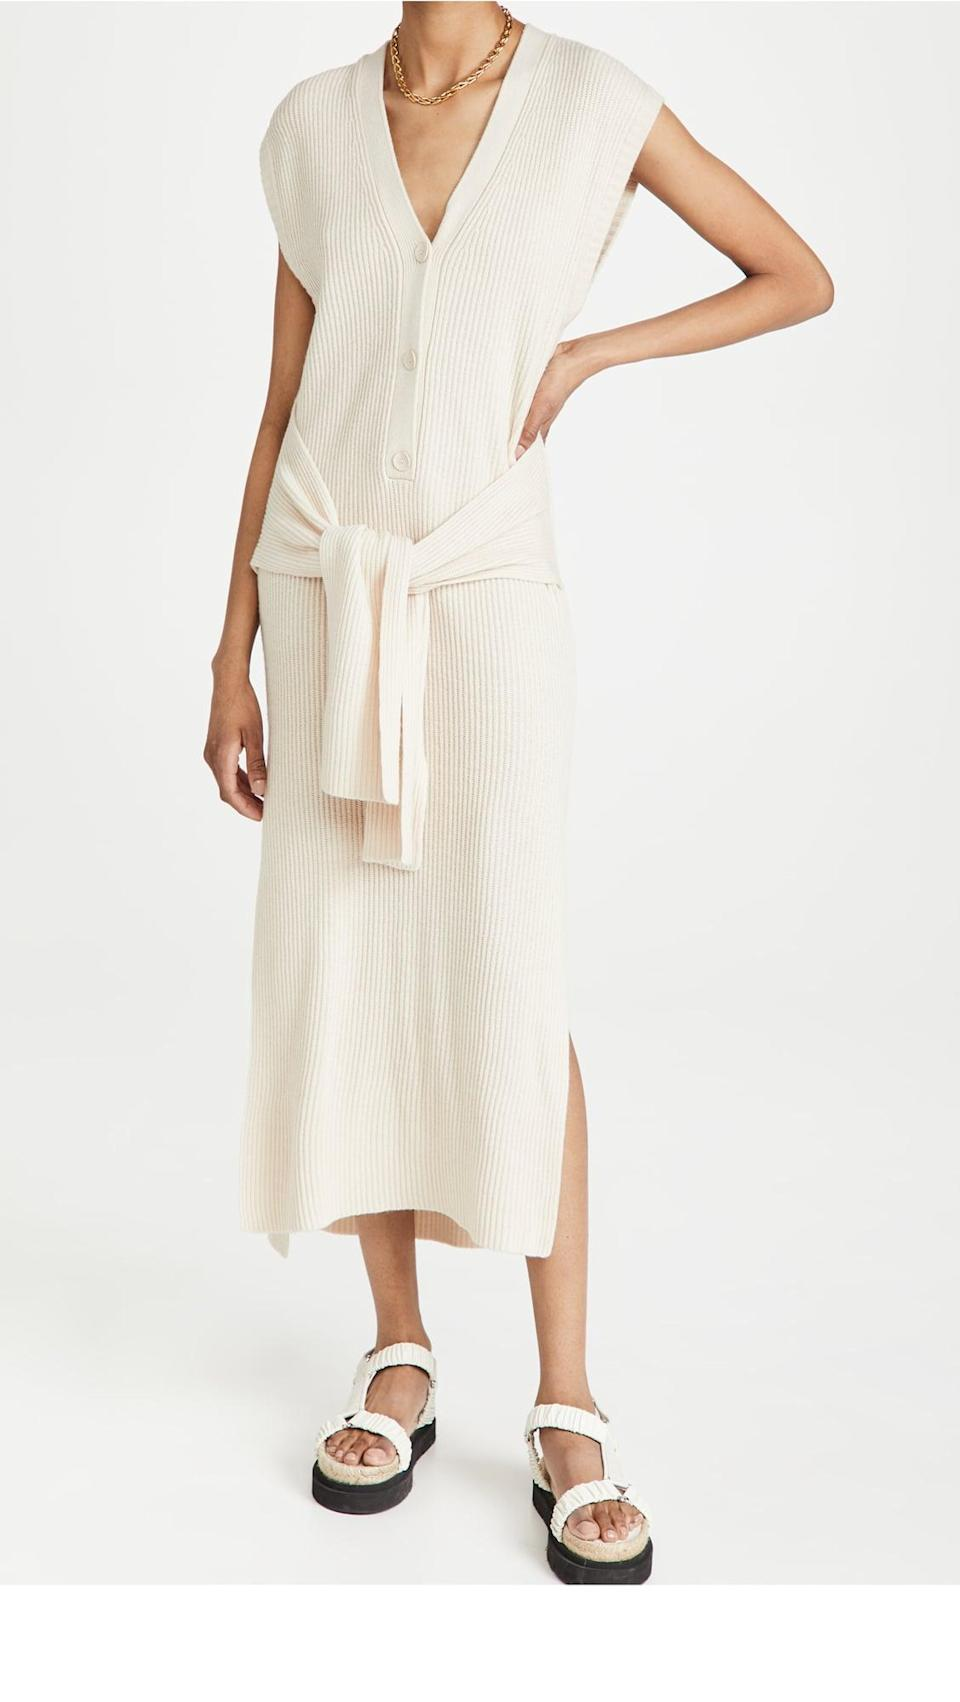 <p>This <span>Jonathan Simkhai Annette Loungewear Henley Dress</span> ($237, originally $395) looks like a comfortable and easygoing outfit for traveling, so you might find yourself wearing it to the airport. Finish the looks with some Teva sandals for maximum comfort.</p>